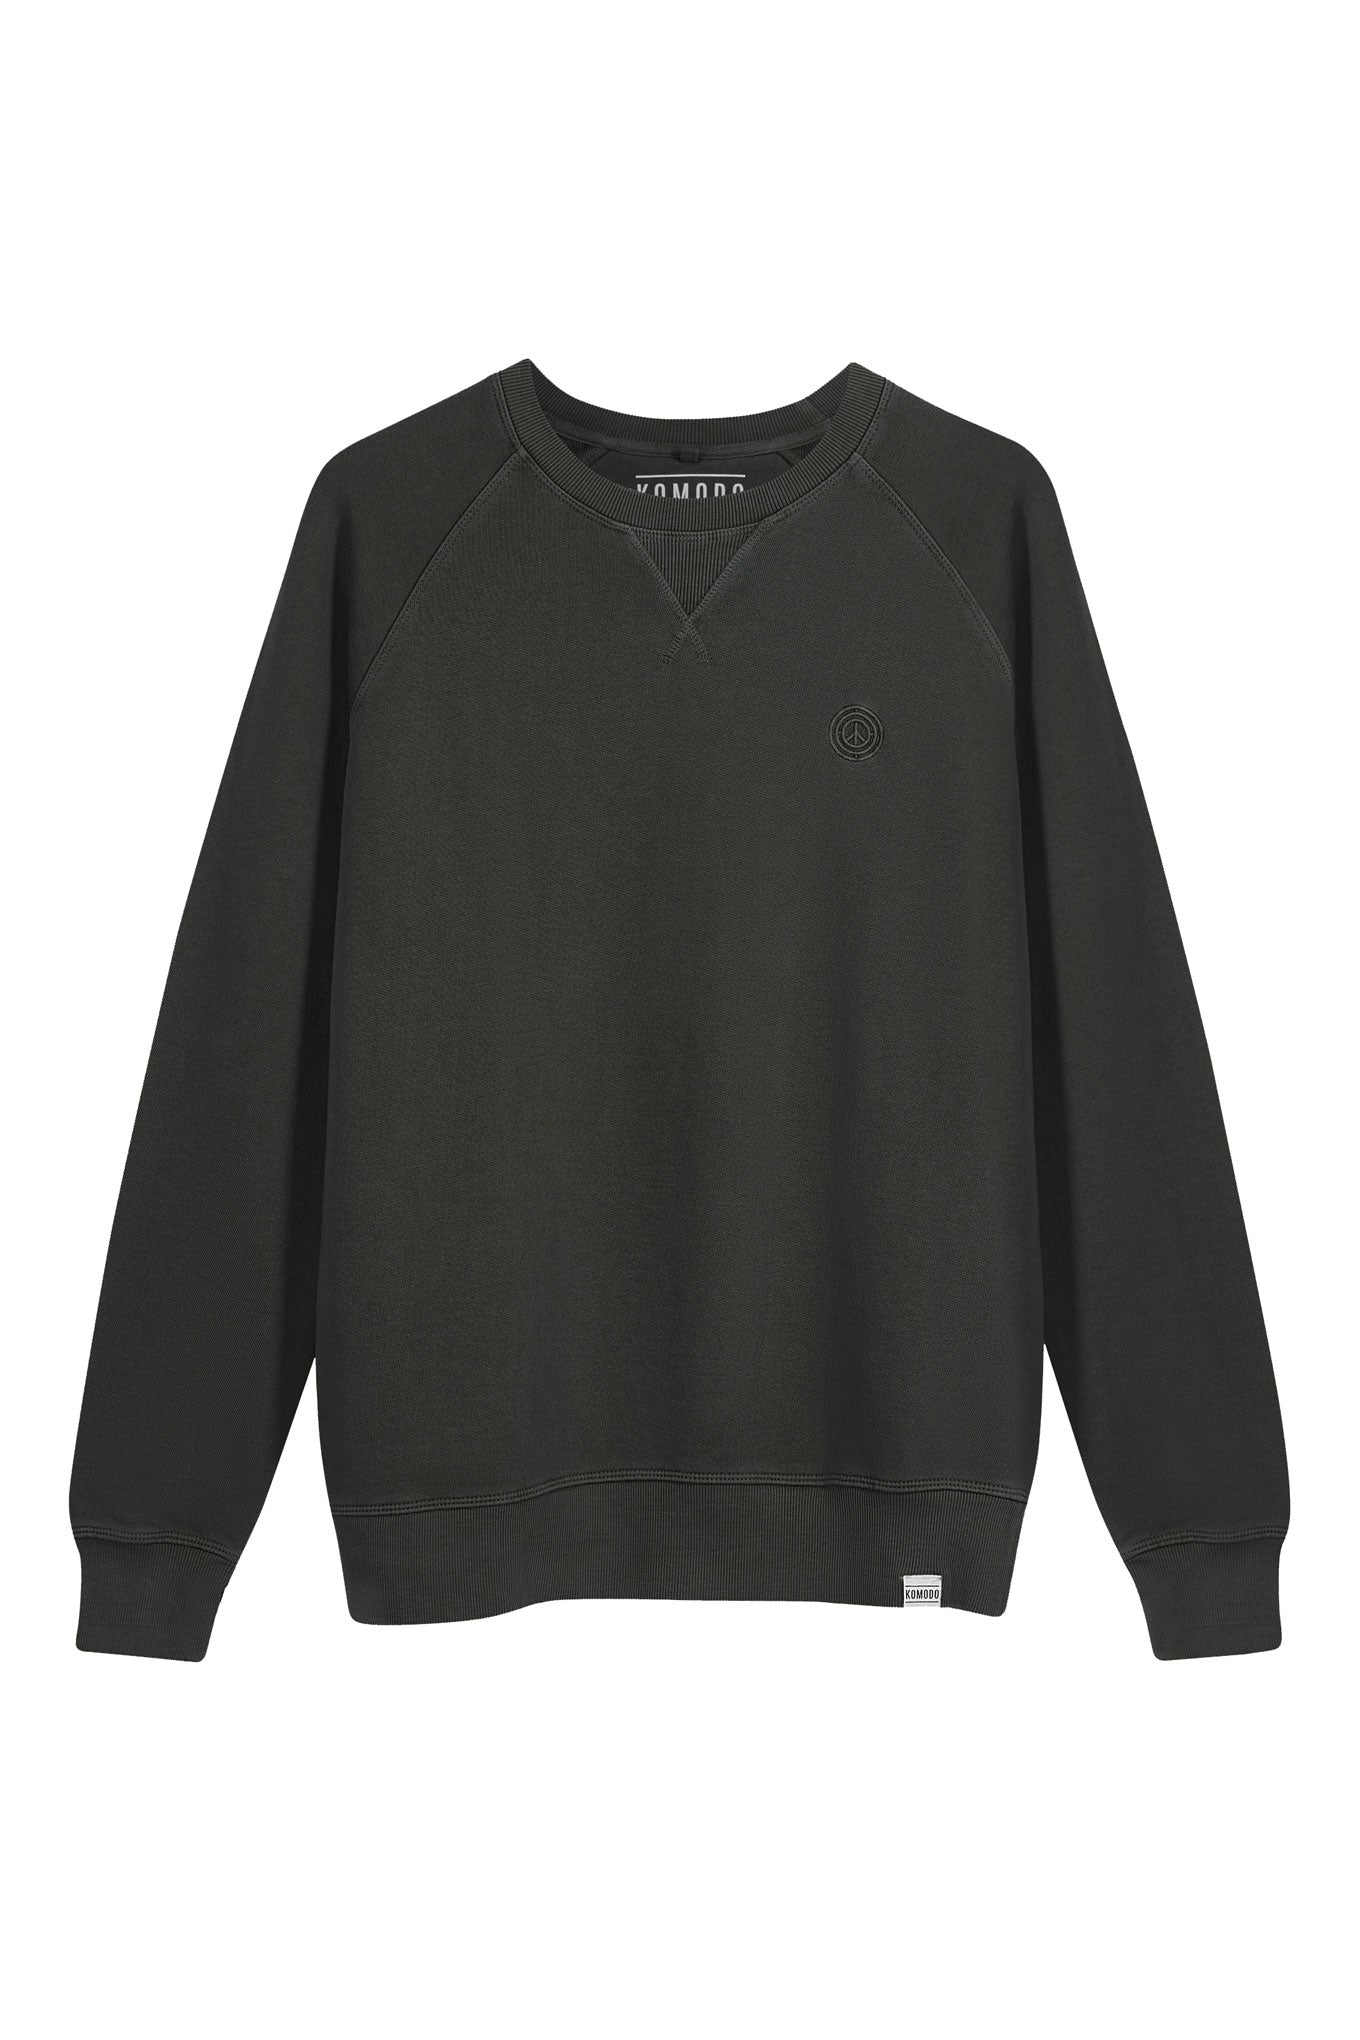 ANTON Mens Organic Cotton Crewneck Black